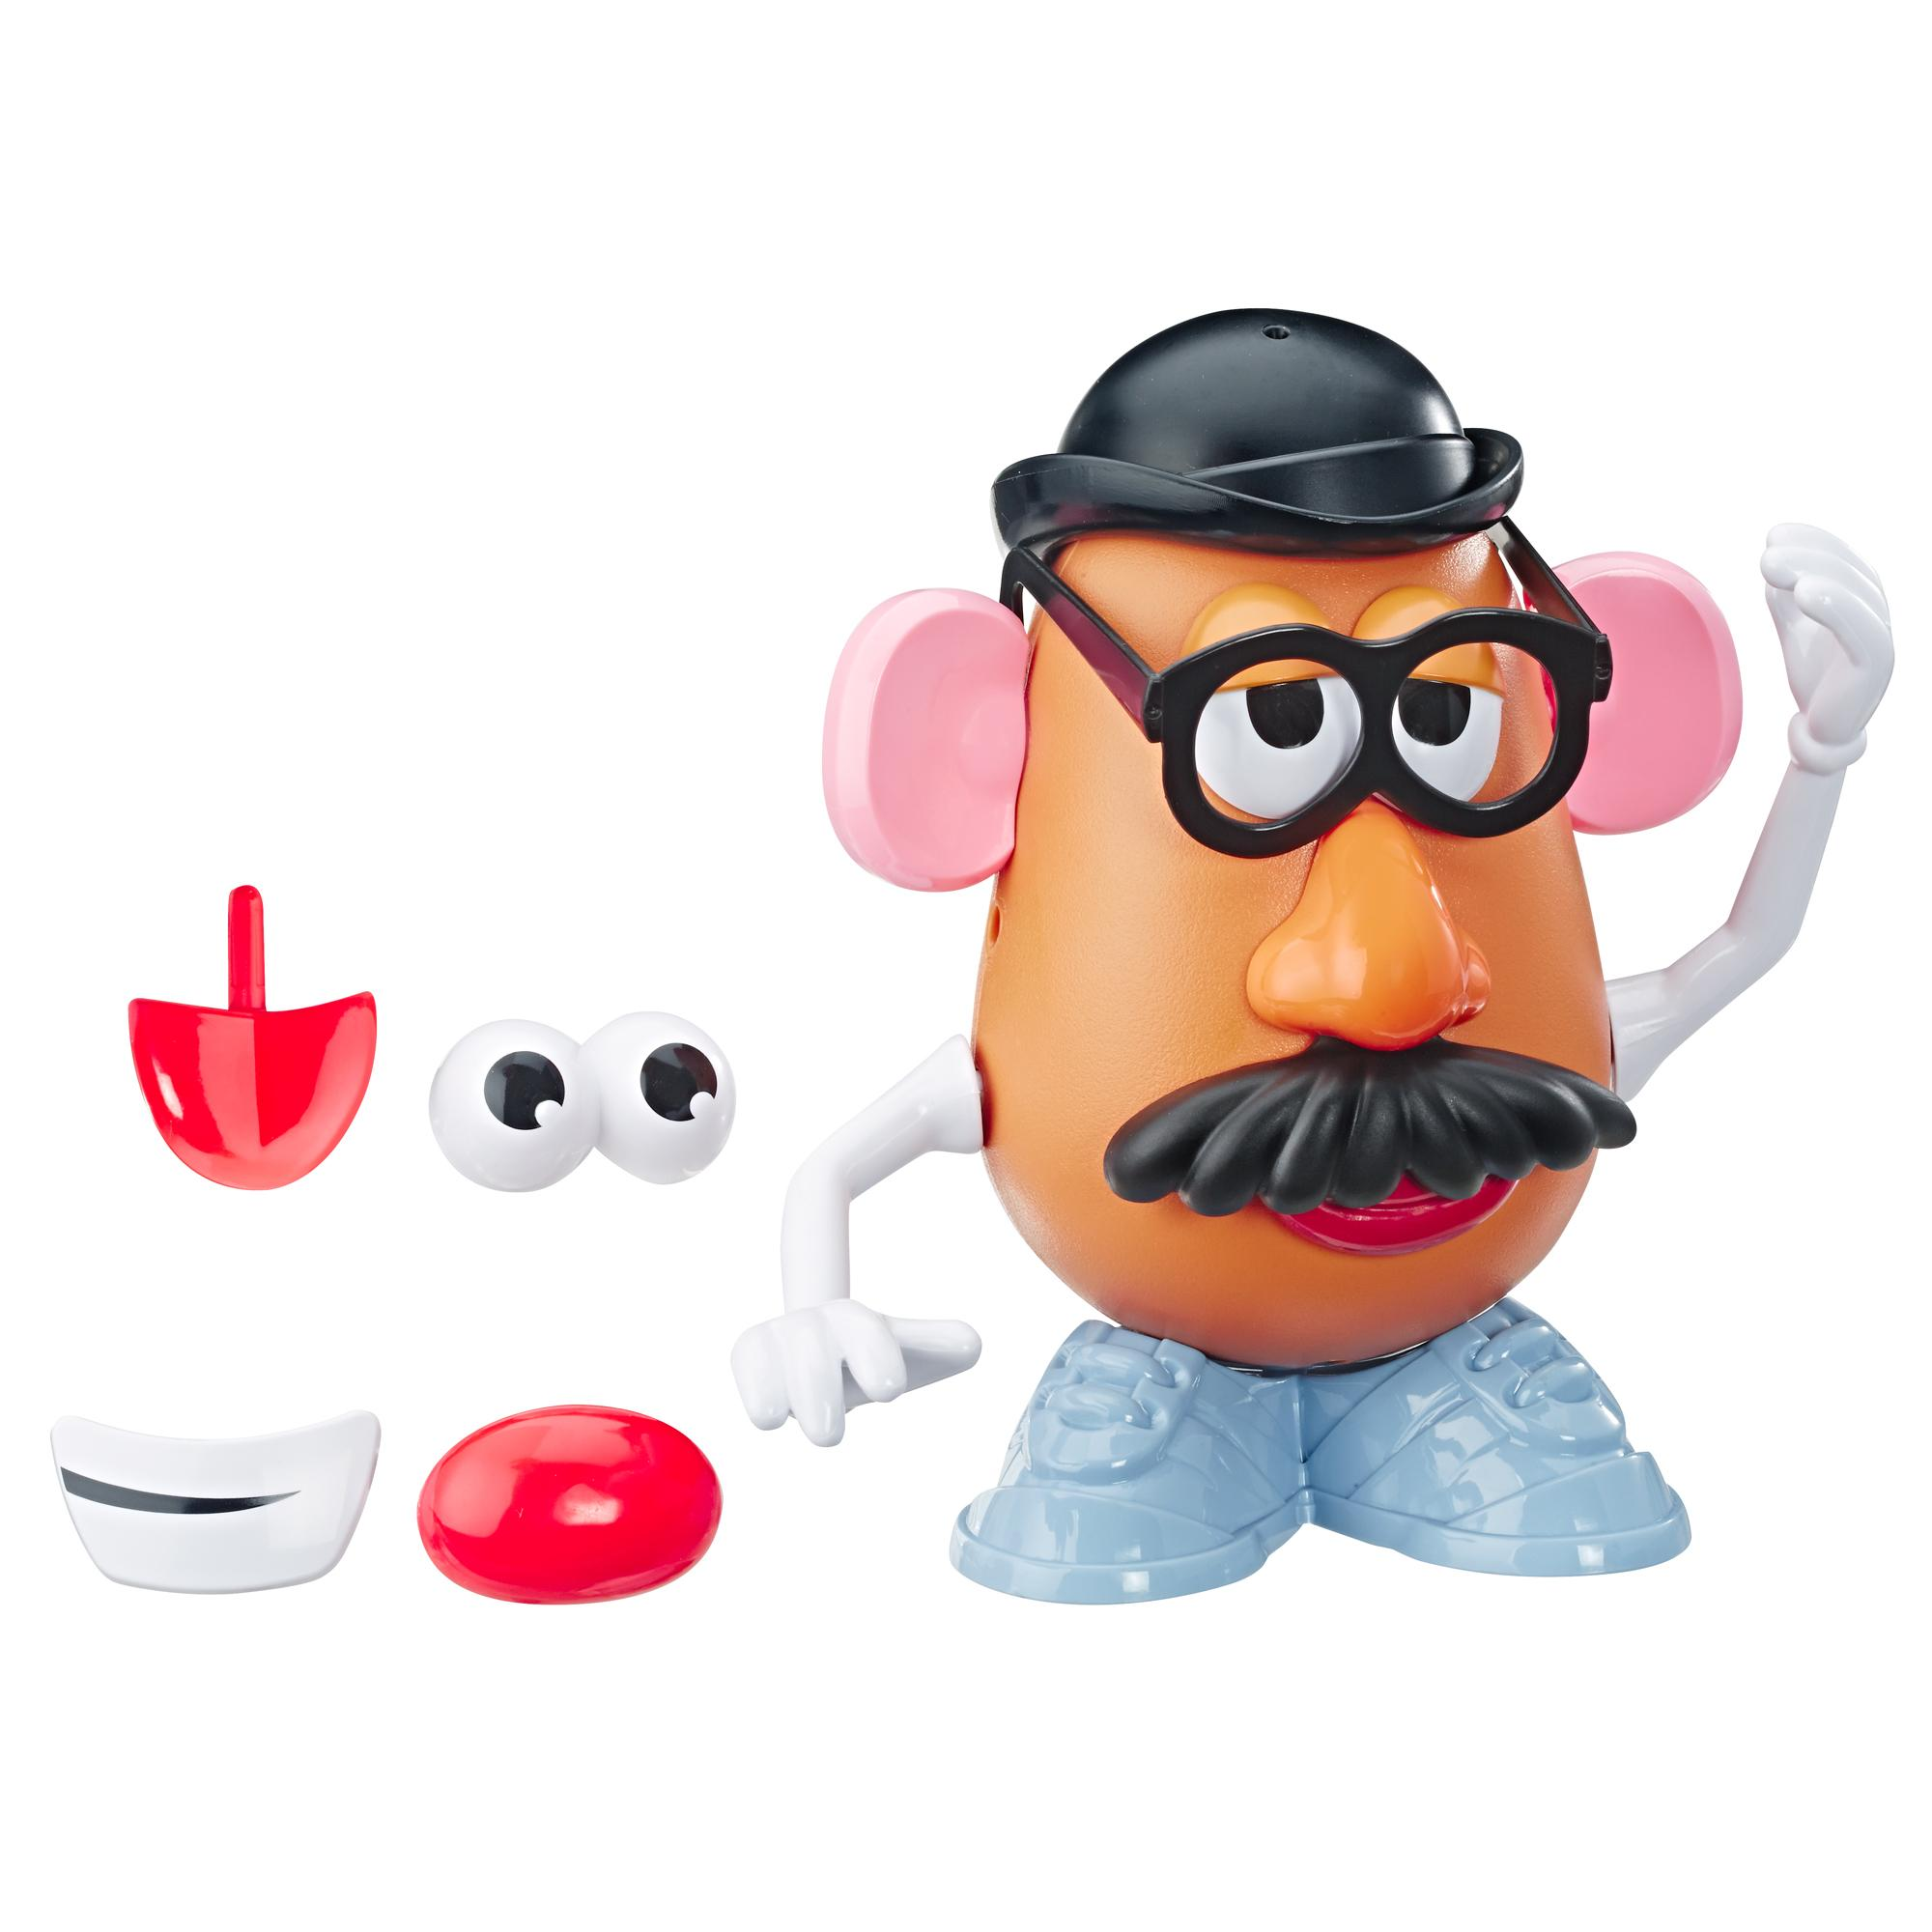 Mr. Potato Head Disney/Pixar Toy Story 4 Classic Mr. Potato Head Figure